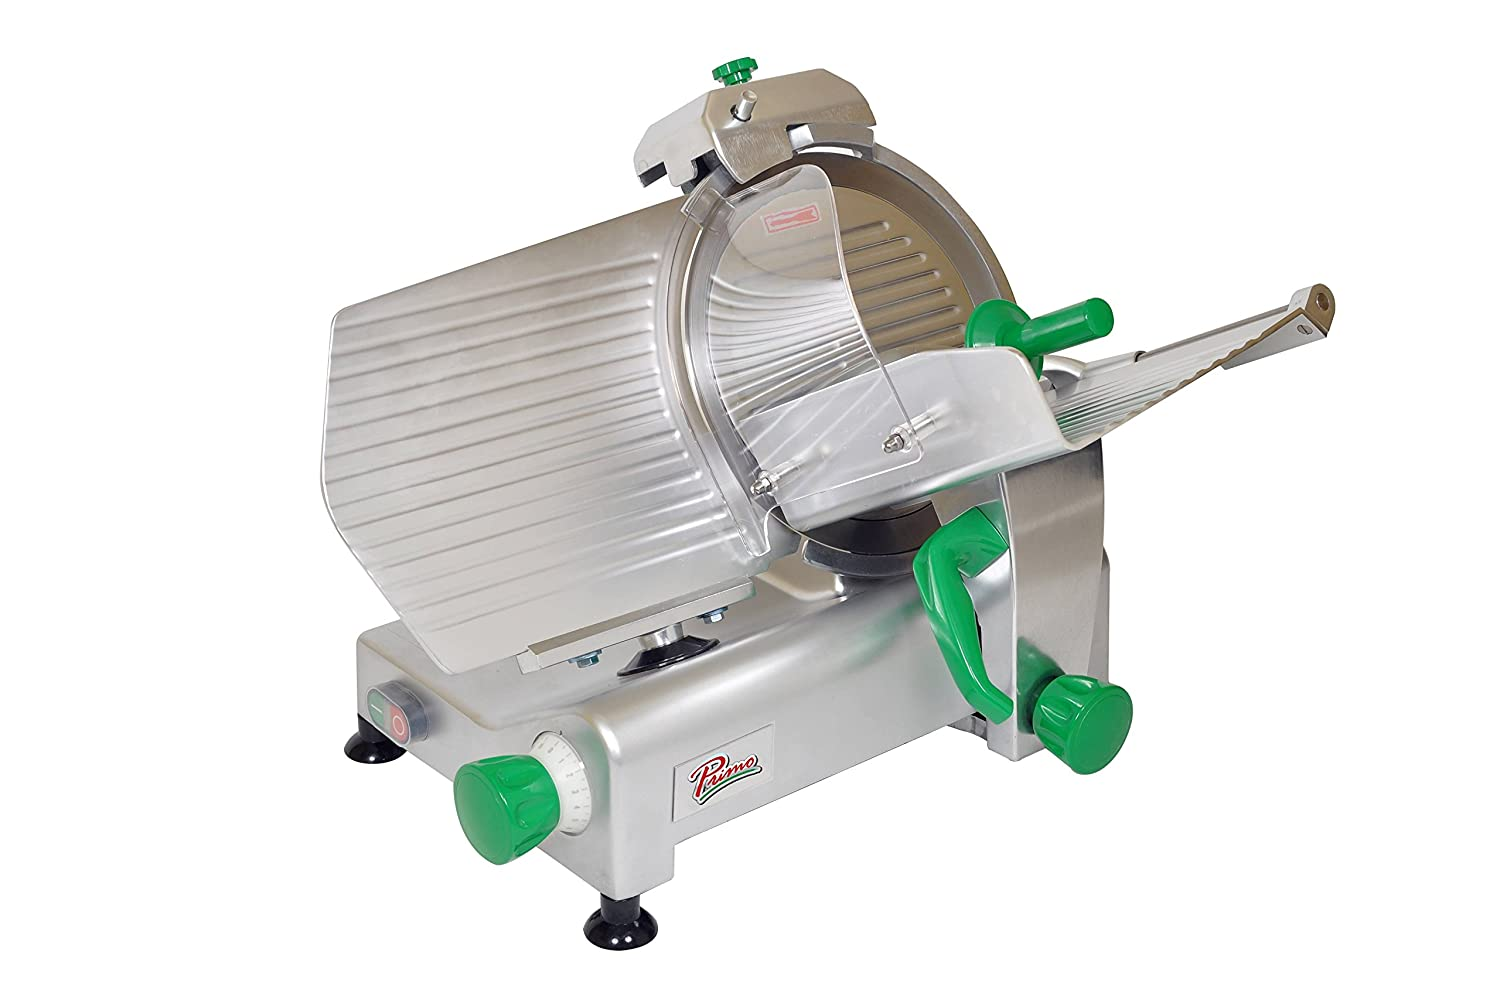 PRIMO PS-12 Anodized Aluminum Meat Slicer, Belt Drive Transmission, 12 Blade, 23-25 128 Width x 14-3 32 Height x 16-3 32 Depth